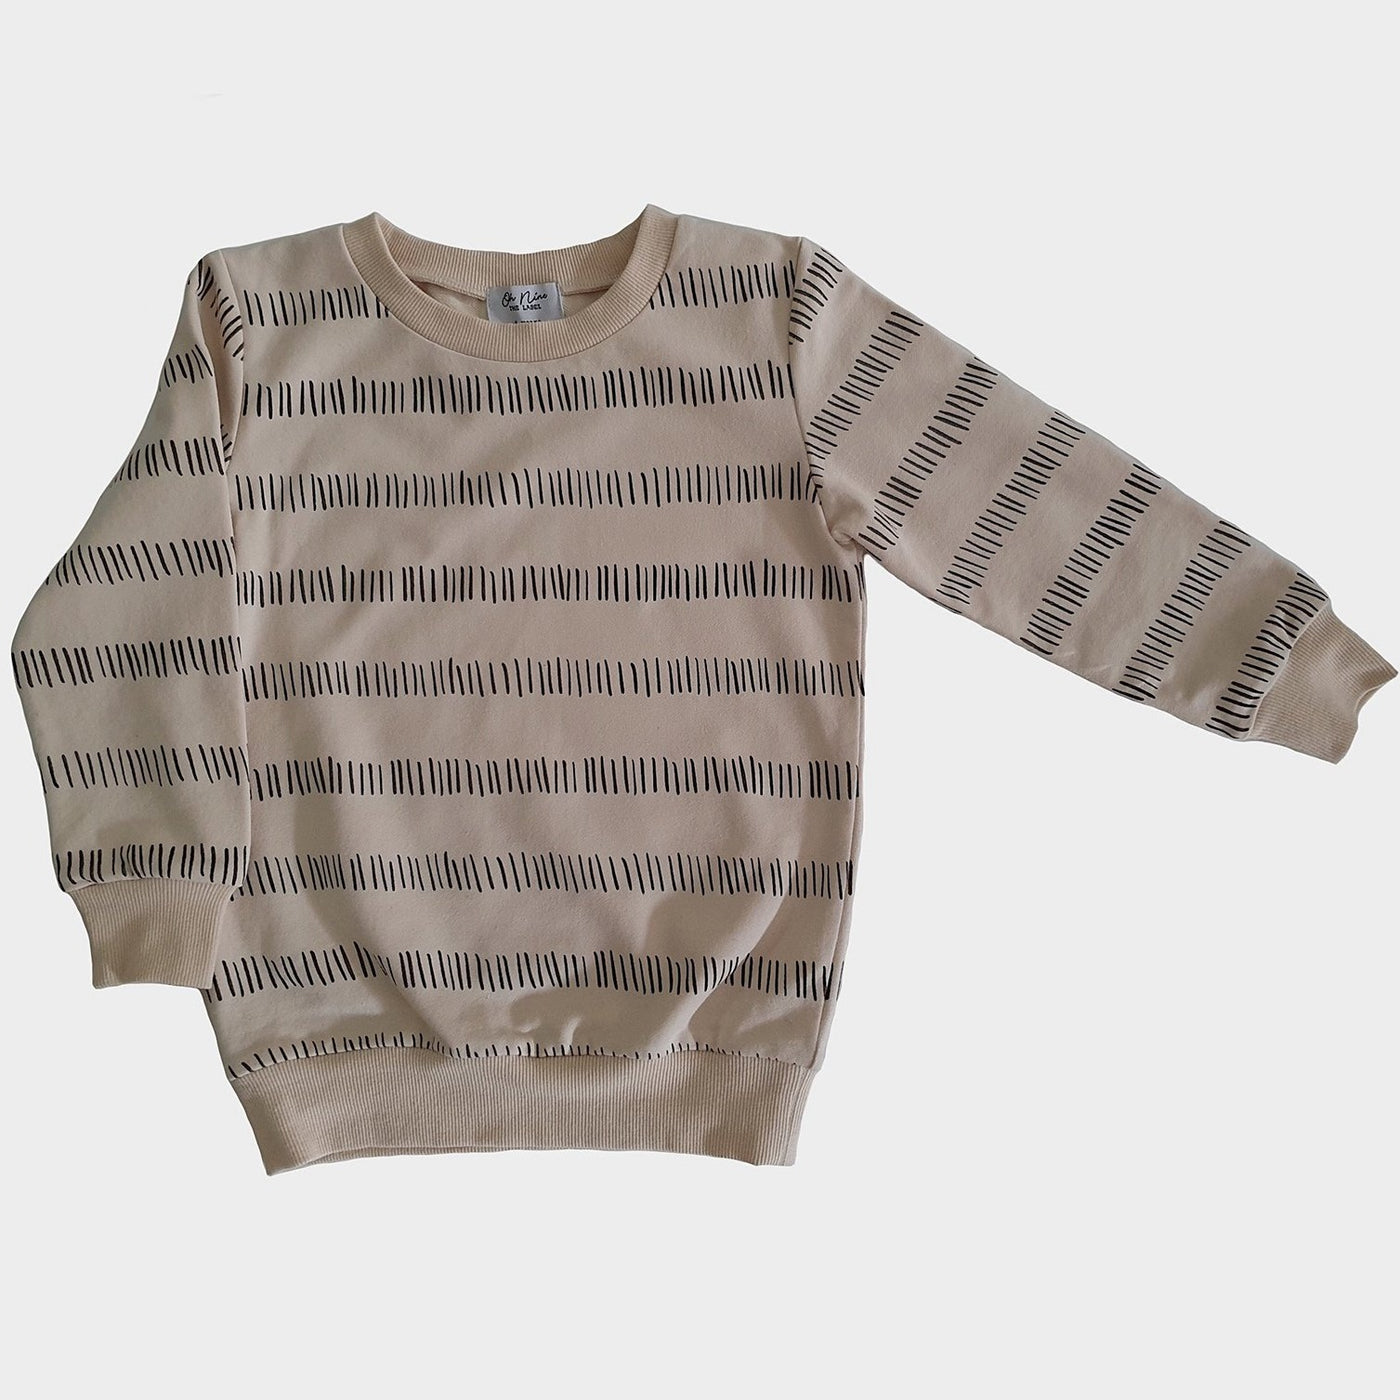 US stockist of Oh Nine The Label's cream and black line sweatshirt.  100% brushed cotton.